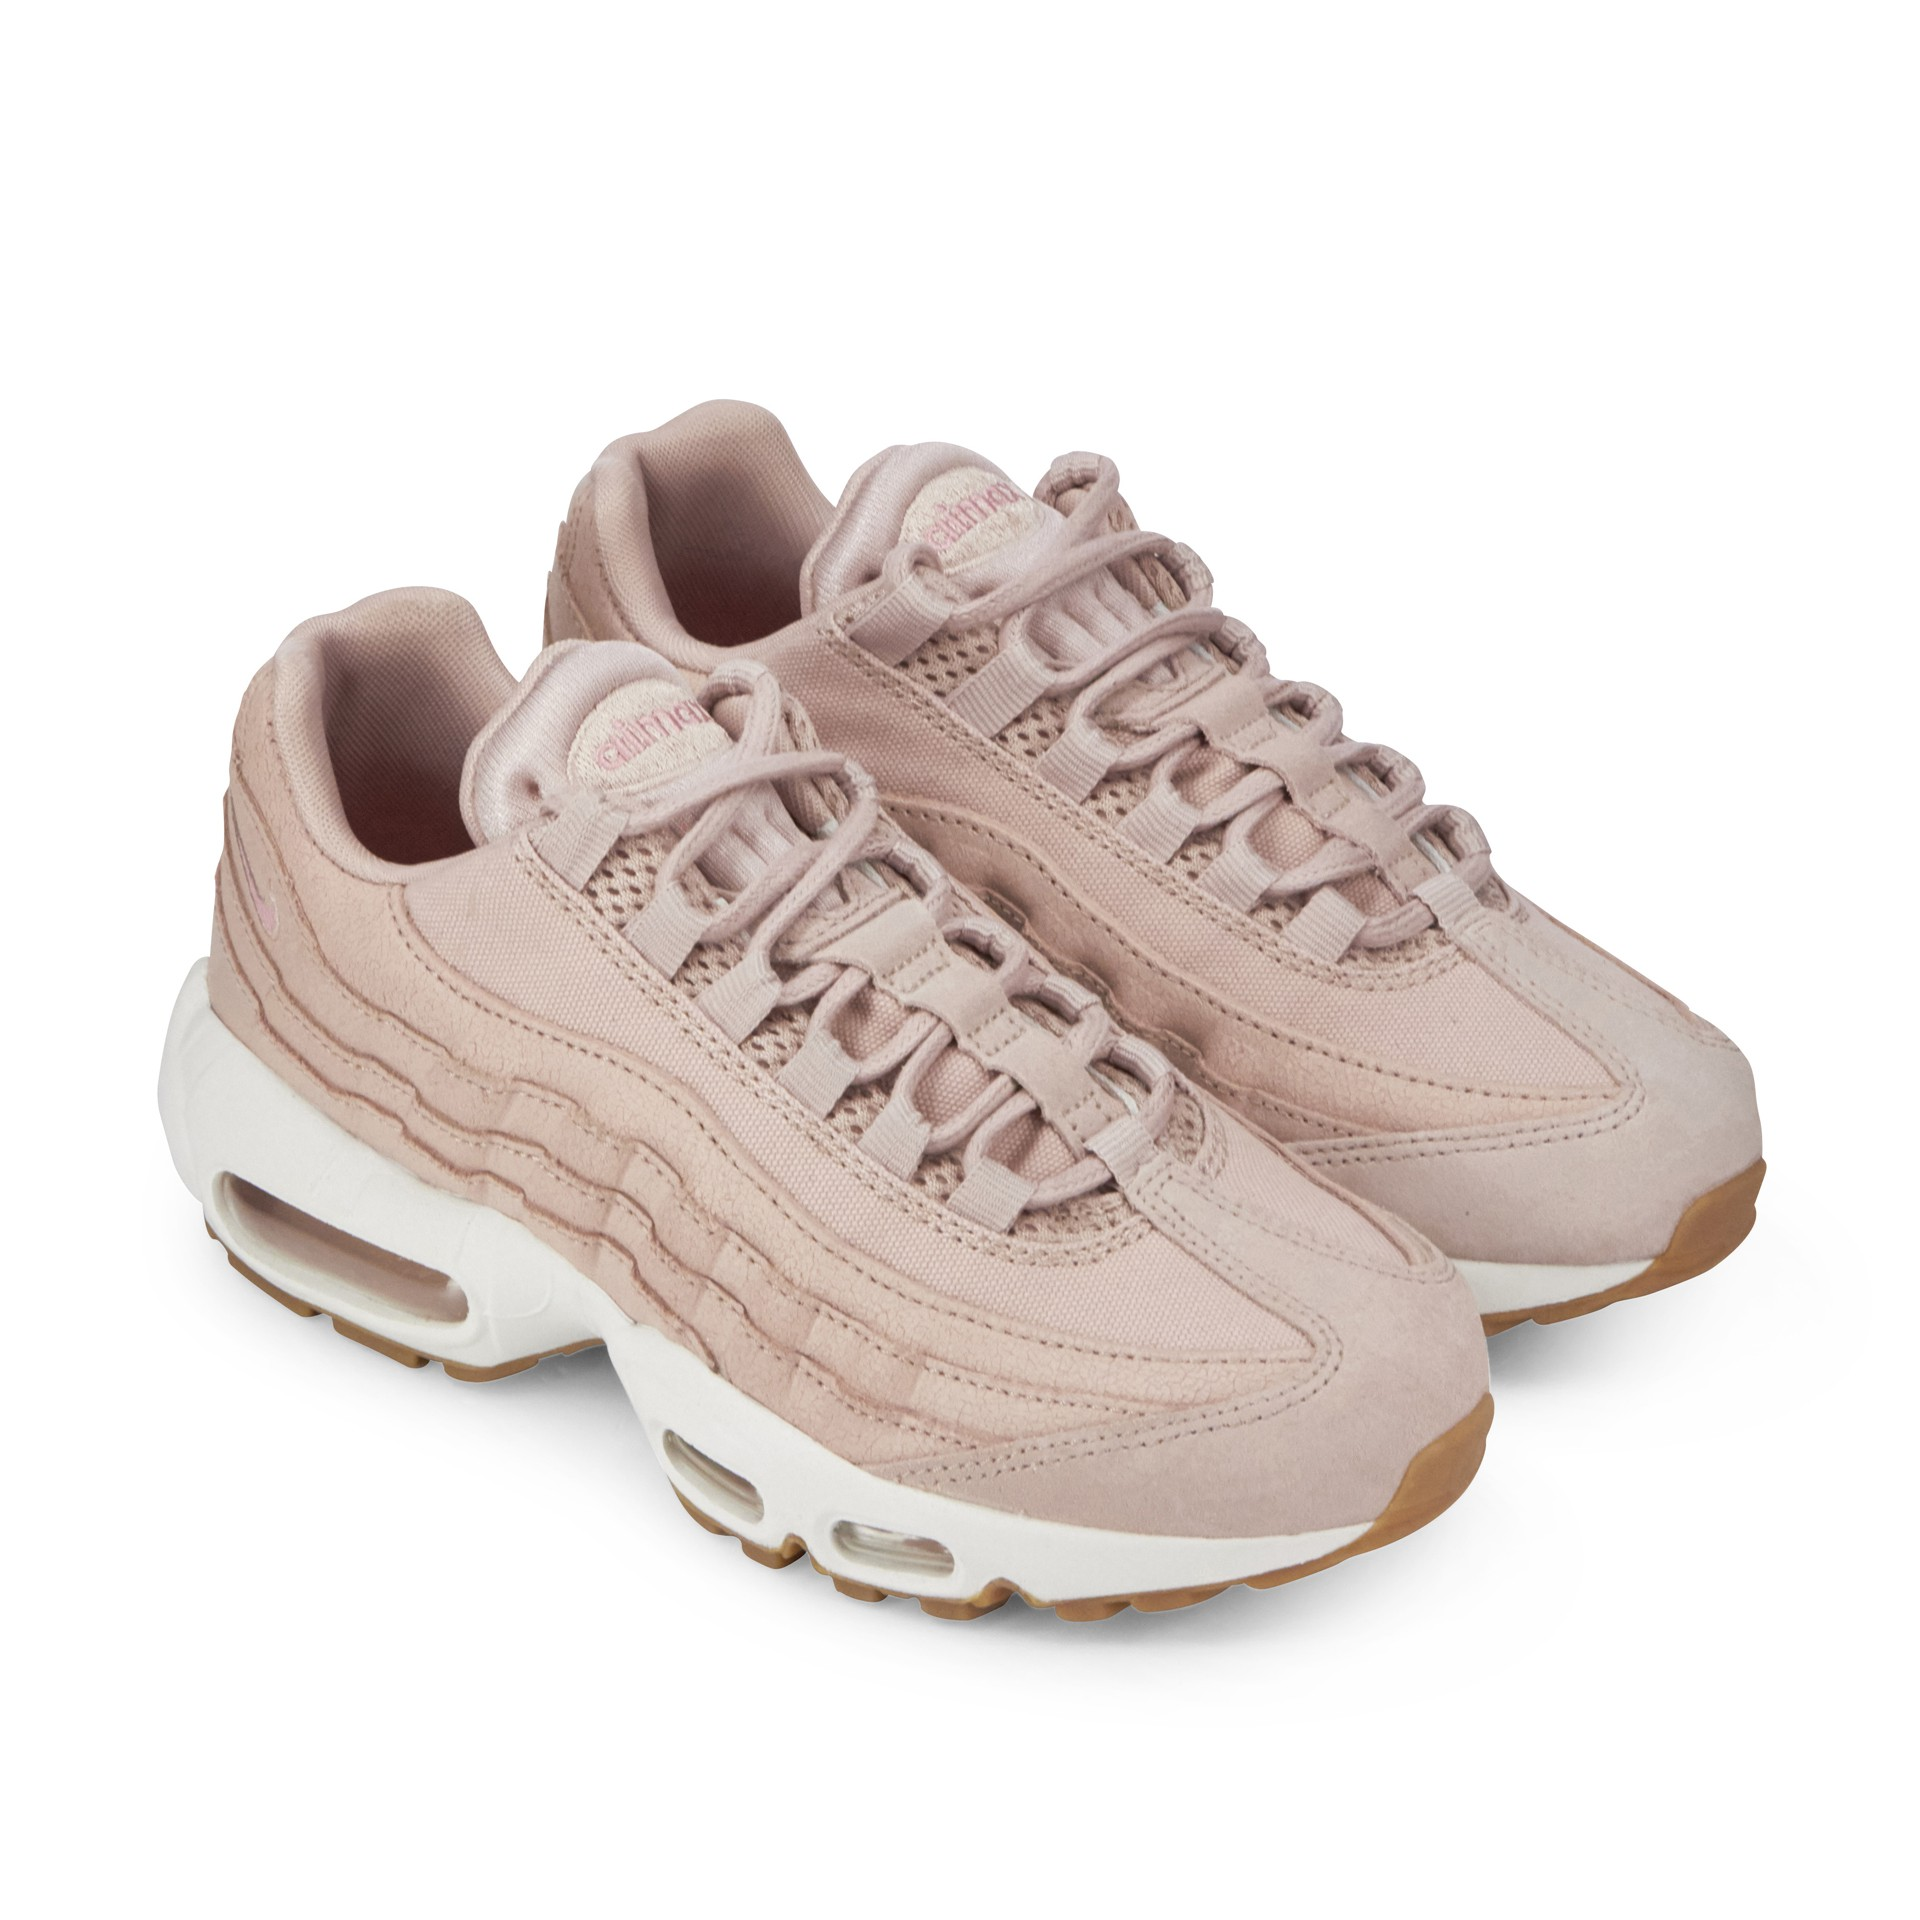 nike air max 95 og chaussure pour femme.rose